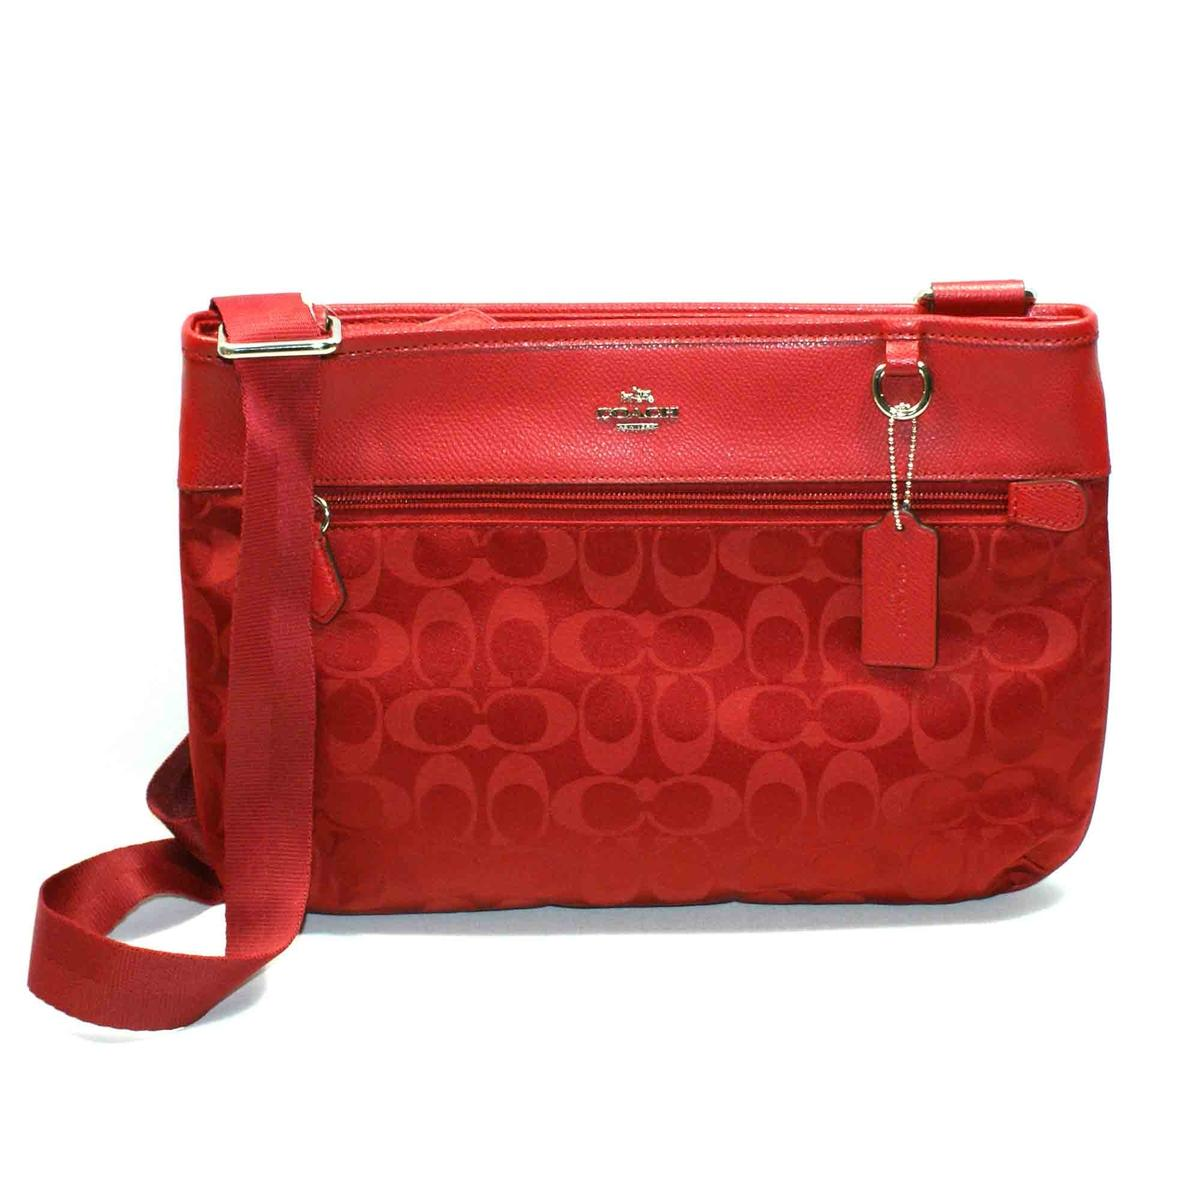 18d0a1fc5 ... coupon code for home coach signature nylon spencer crossbody bag red  currant. click thumbnail to